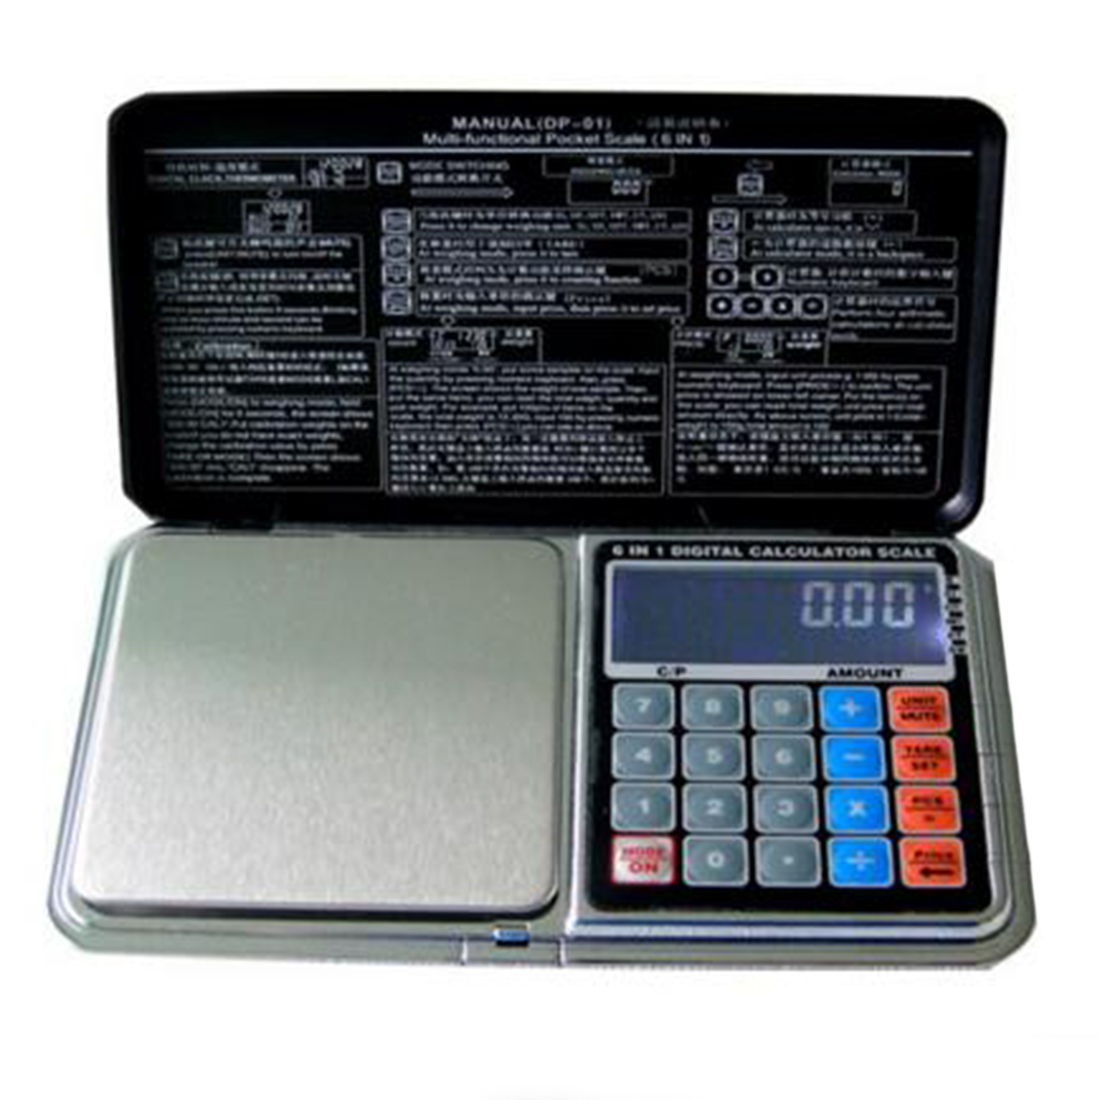 Kitchen Calculator: New Jewelry Scales Weigh Digital LCD Display Electronic